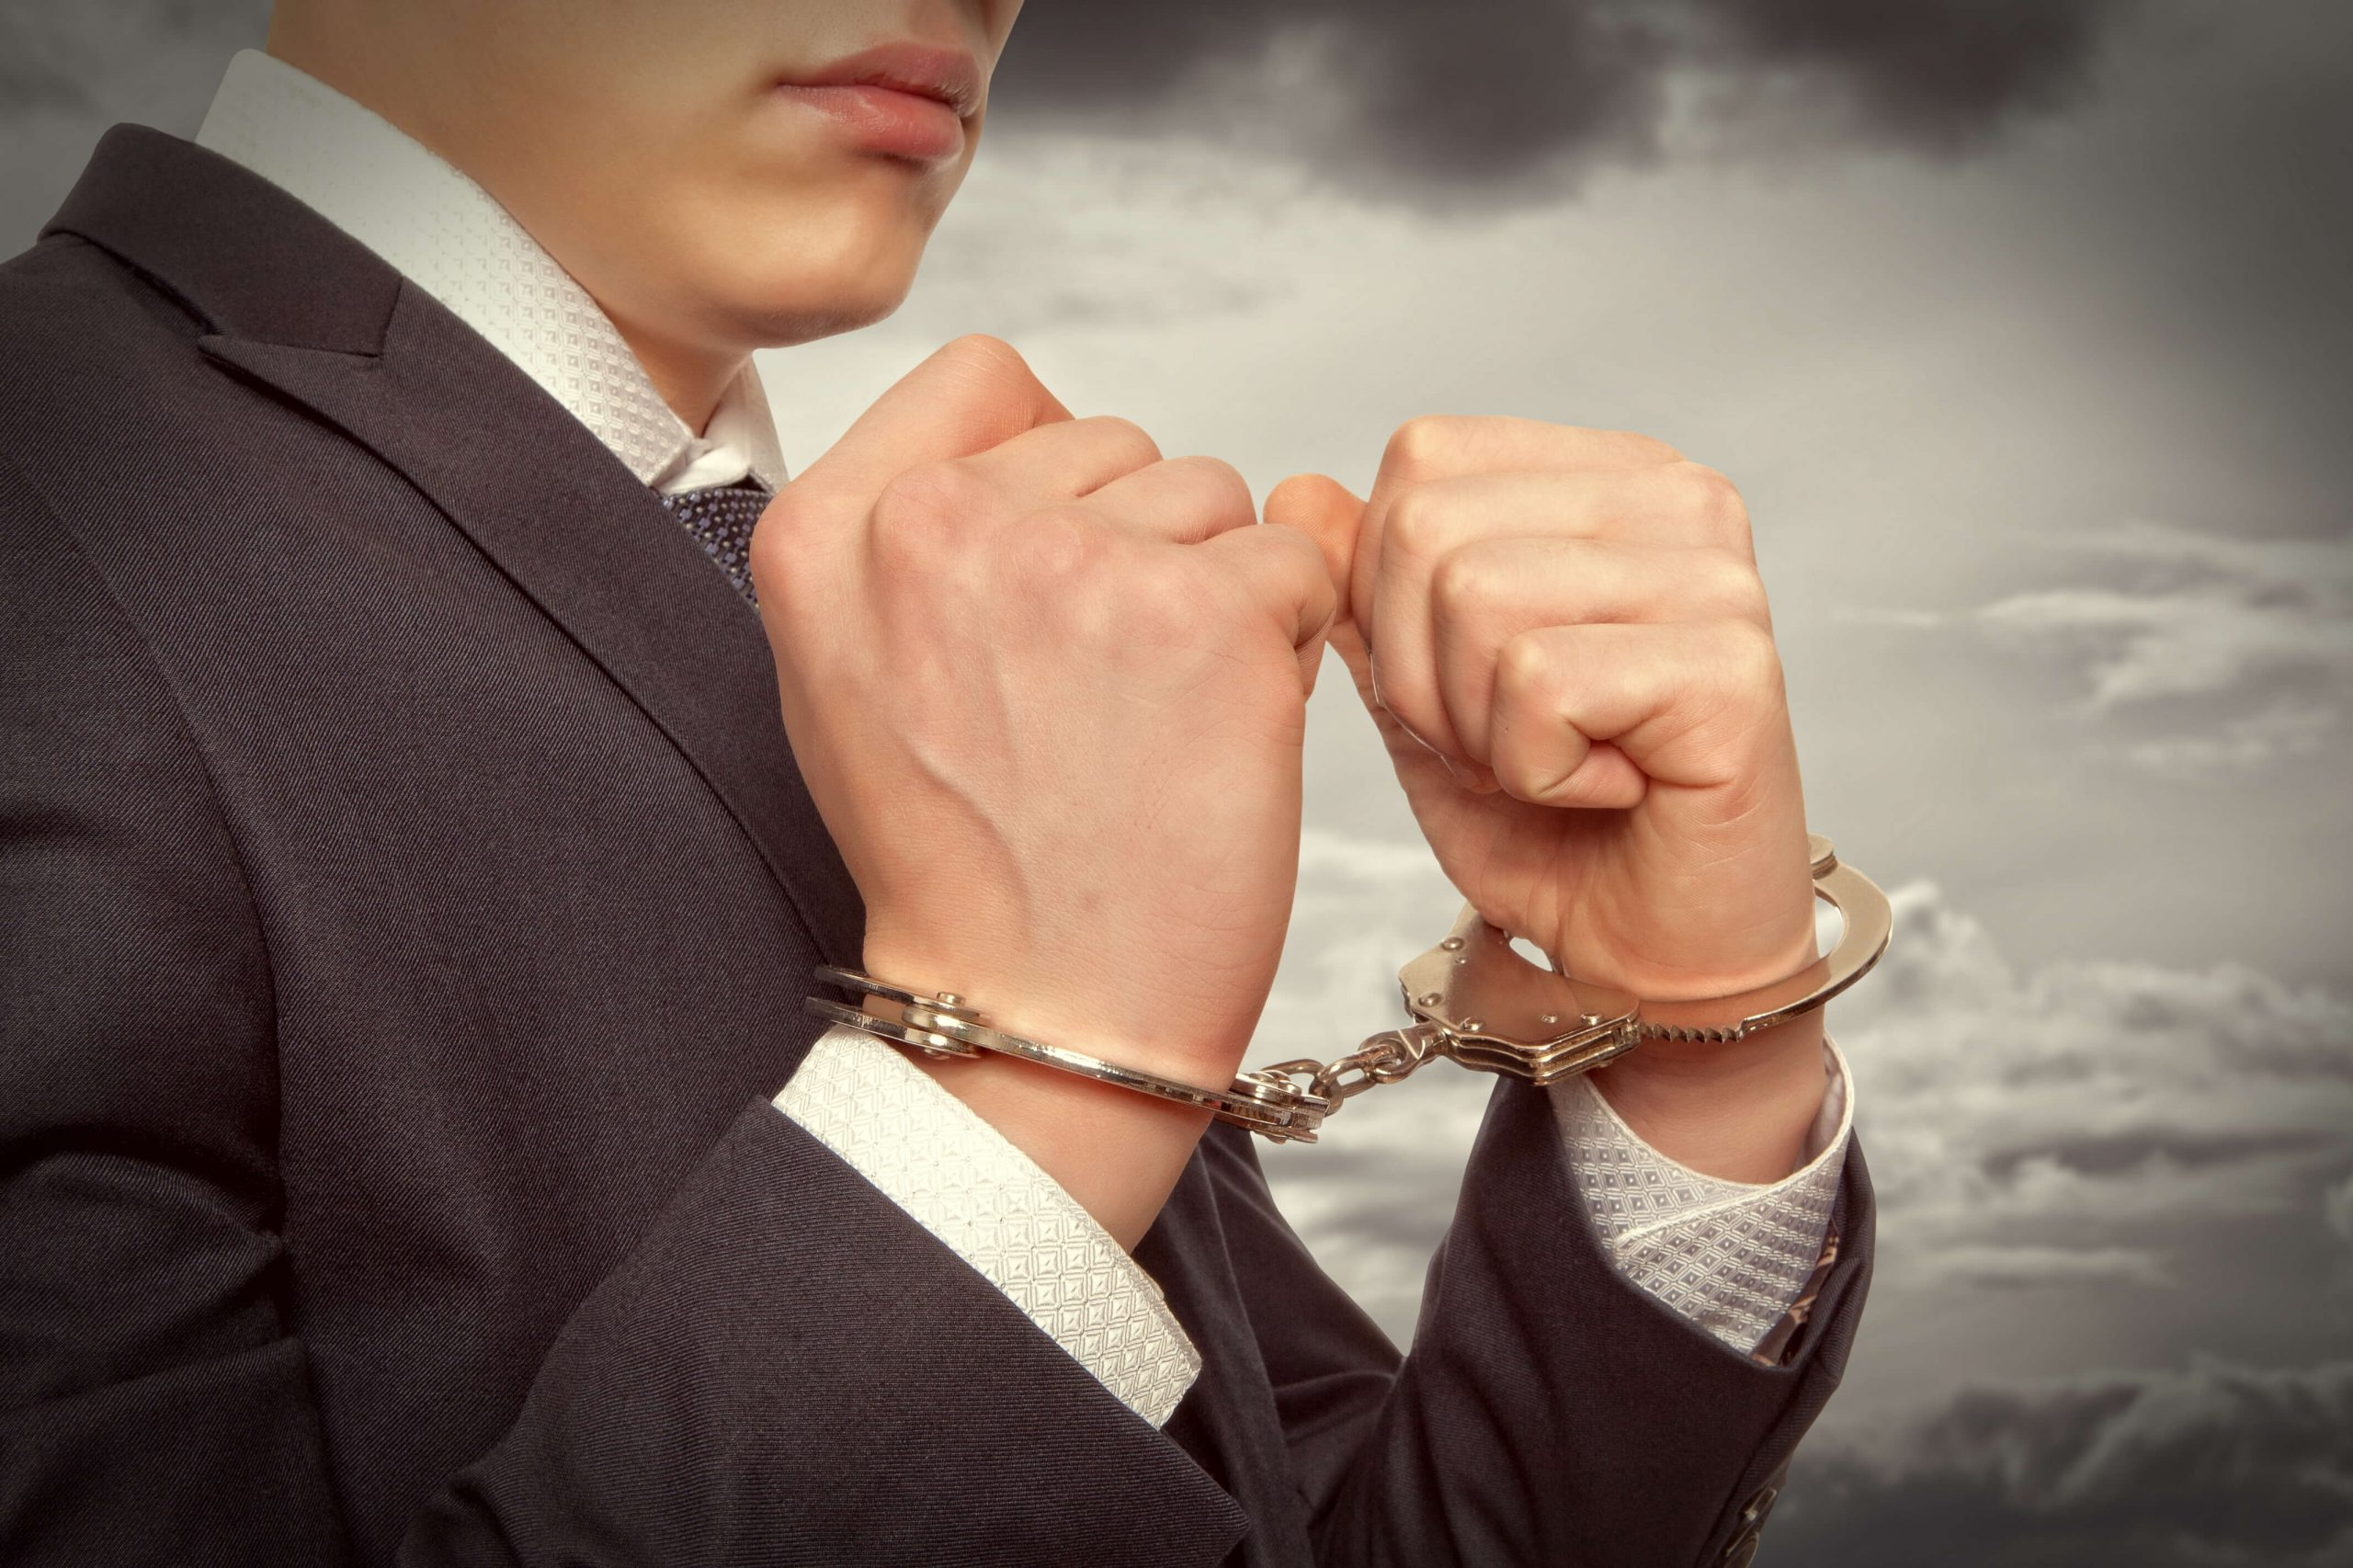 5 Habits I Formed From Going To Prison That Help Me Crush It In Business